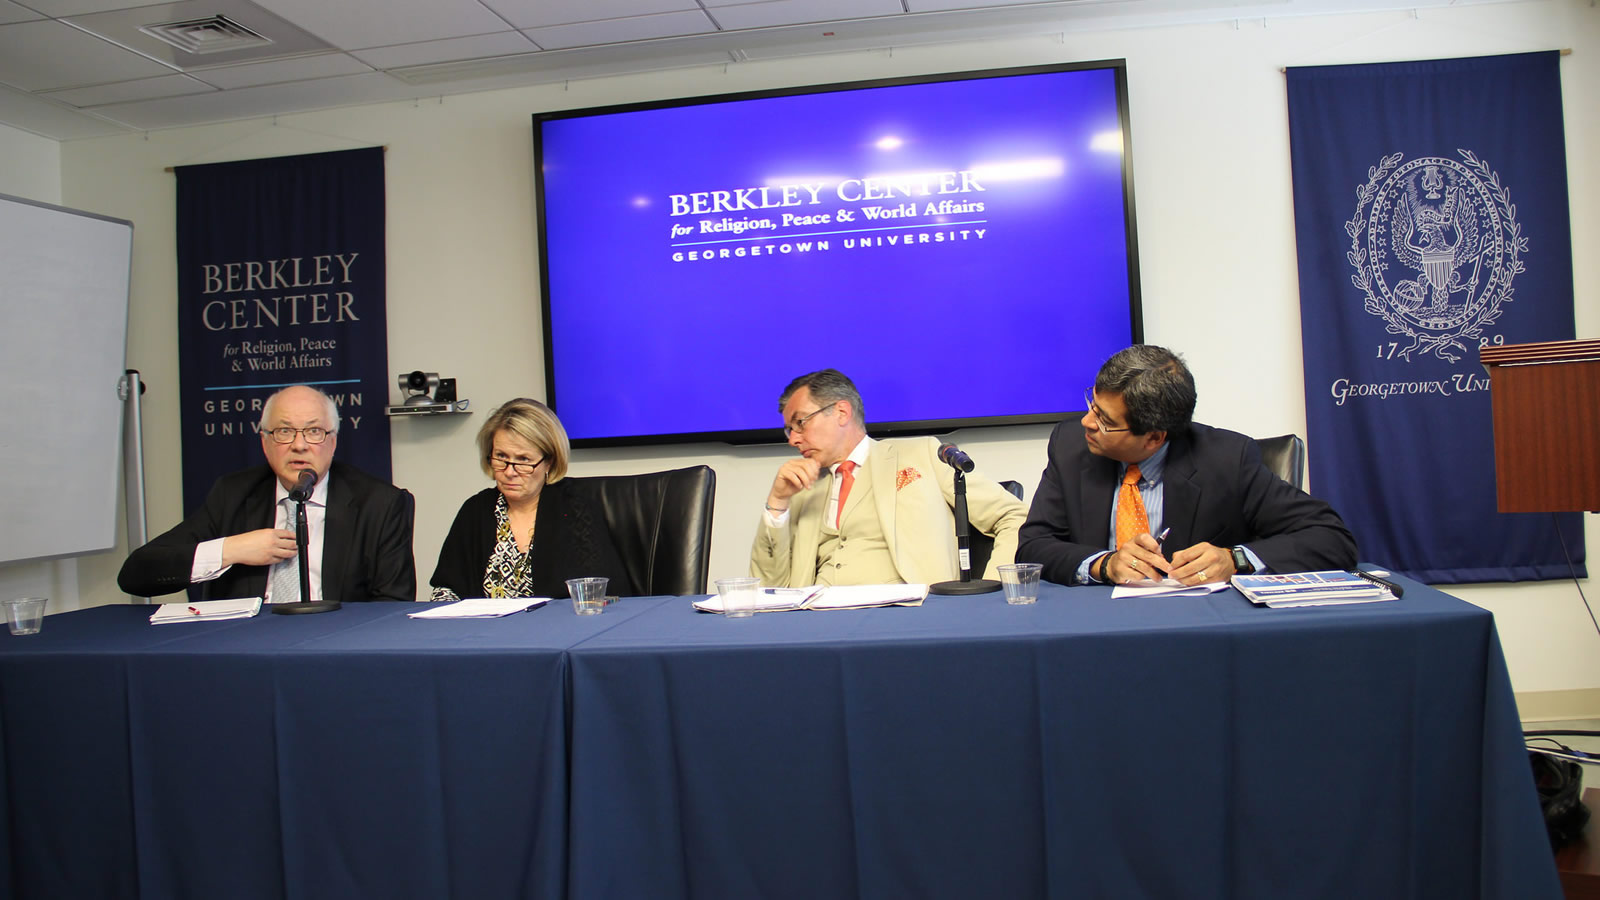 Panelists discuss the challenge of integrating religion into practical diplomatic work.